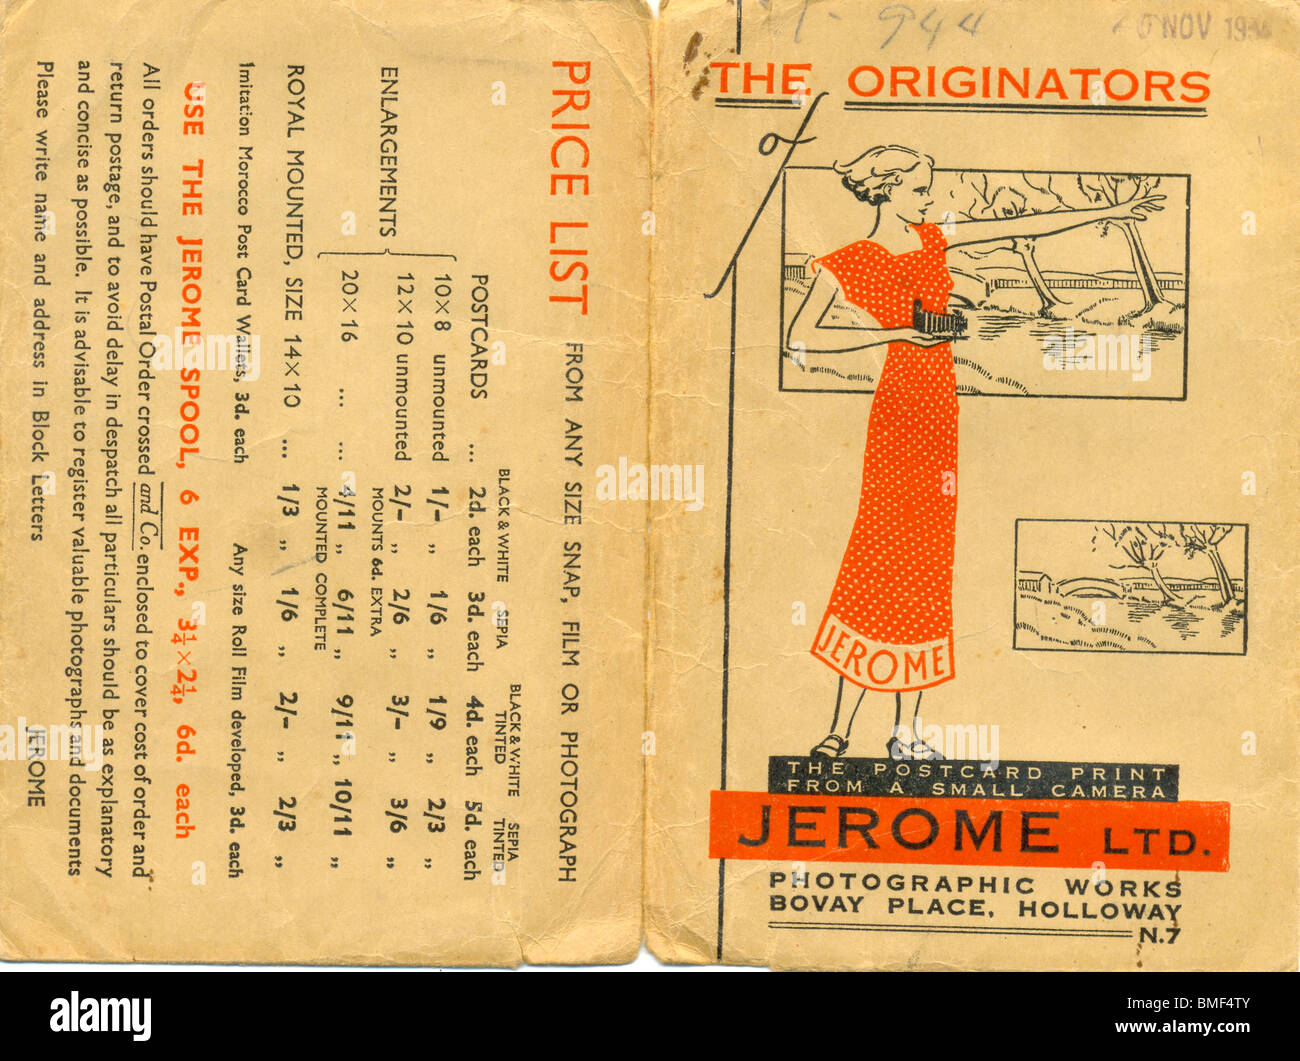 Photo wallet from Jerome Ltd date stamped 20 November 1935 - Stock Image